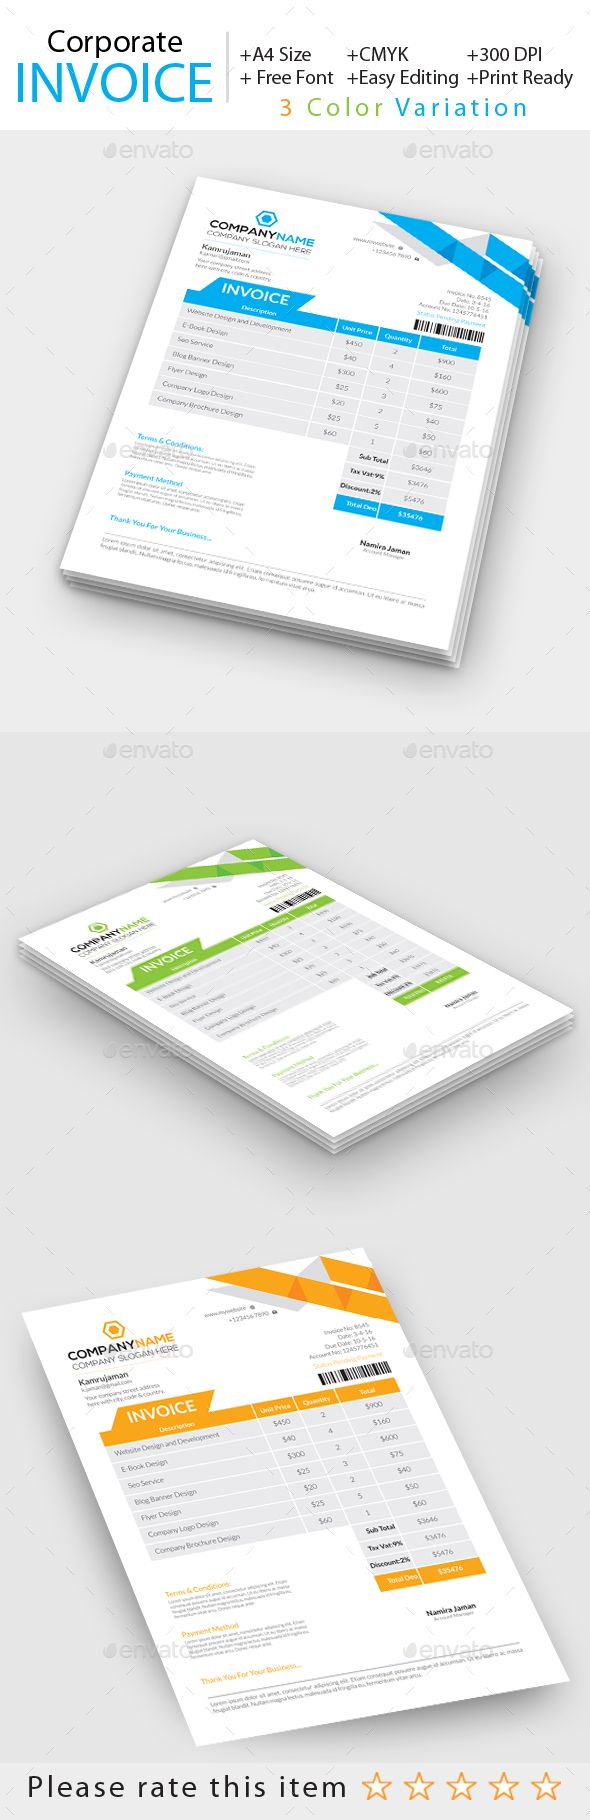 Business card printing free templates from nextdayflyers - Corporate Invoice